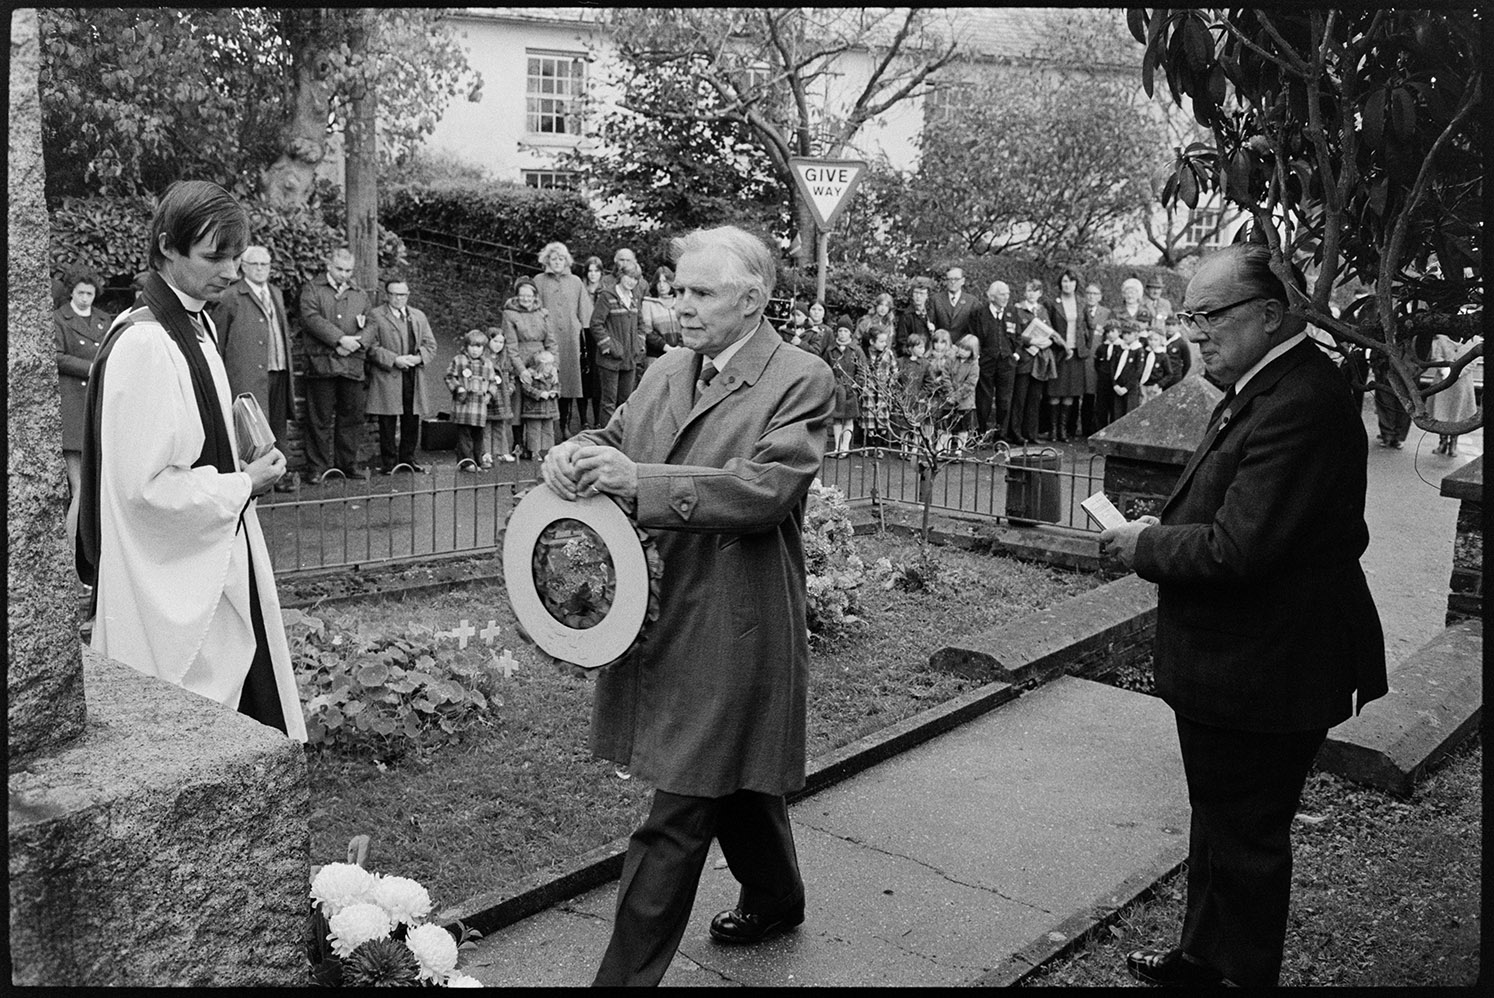 Remembrance Day ceremony at village war memorial, old soldiers with poppy wreath.  Dolton, 11 November 1979